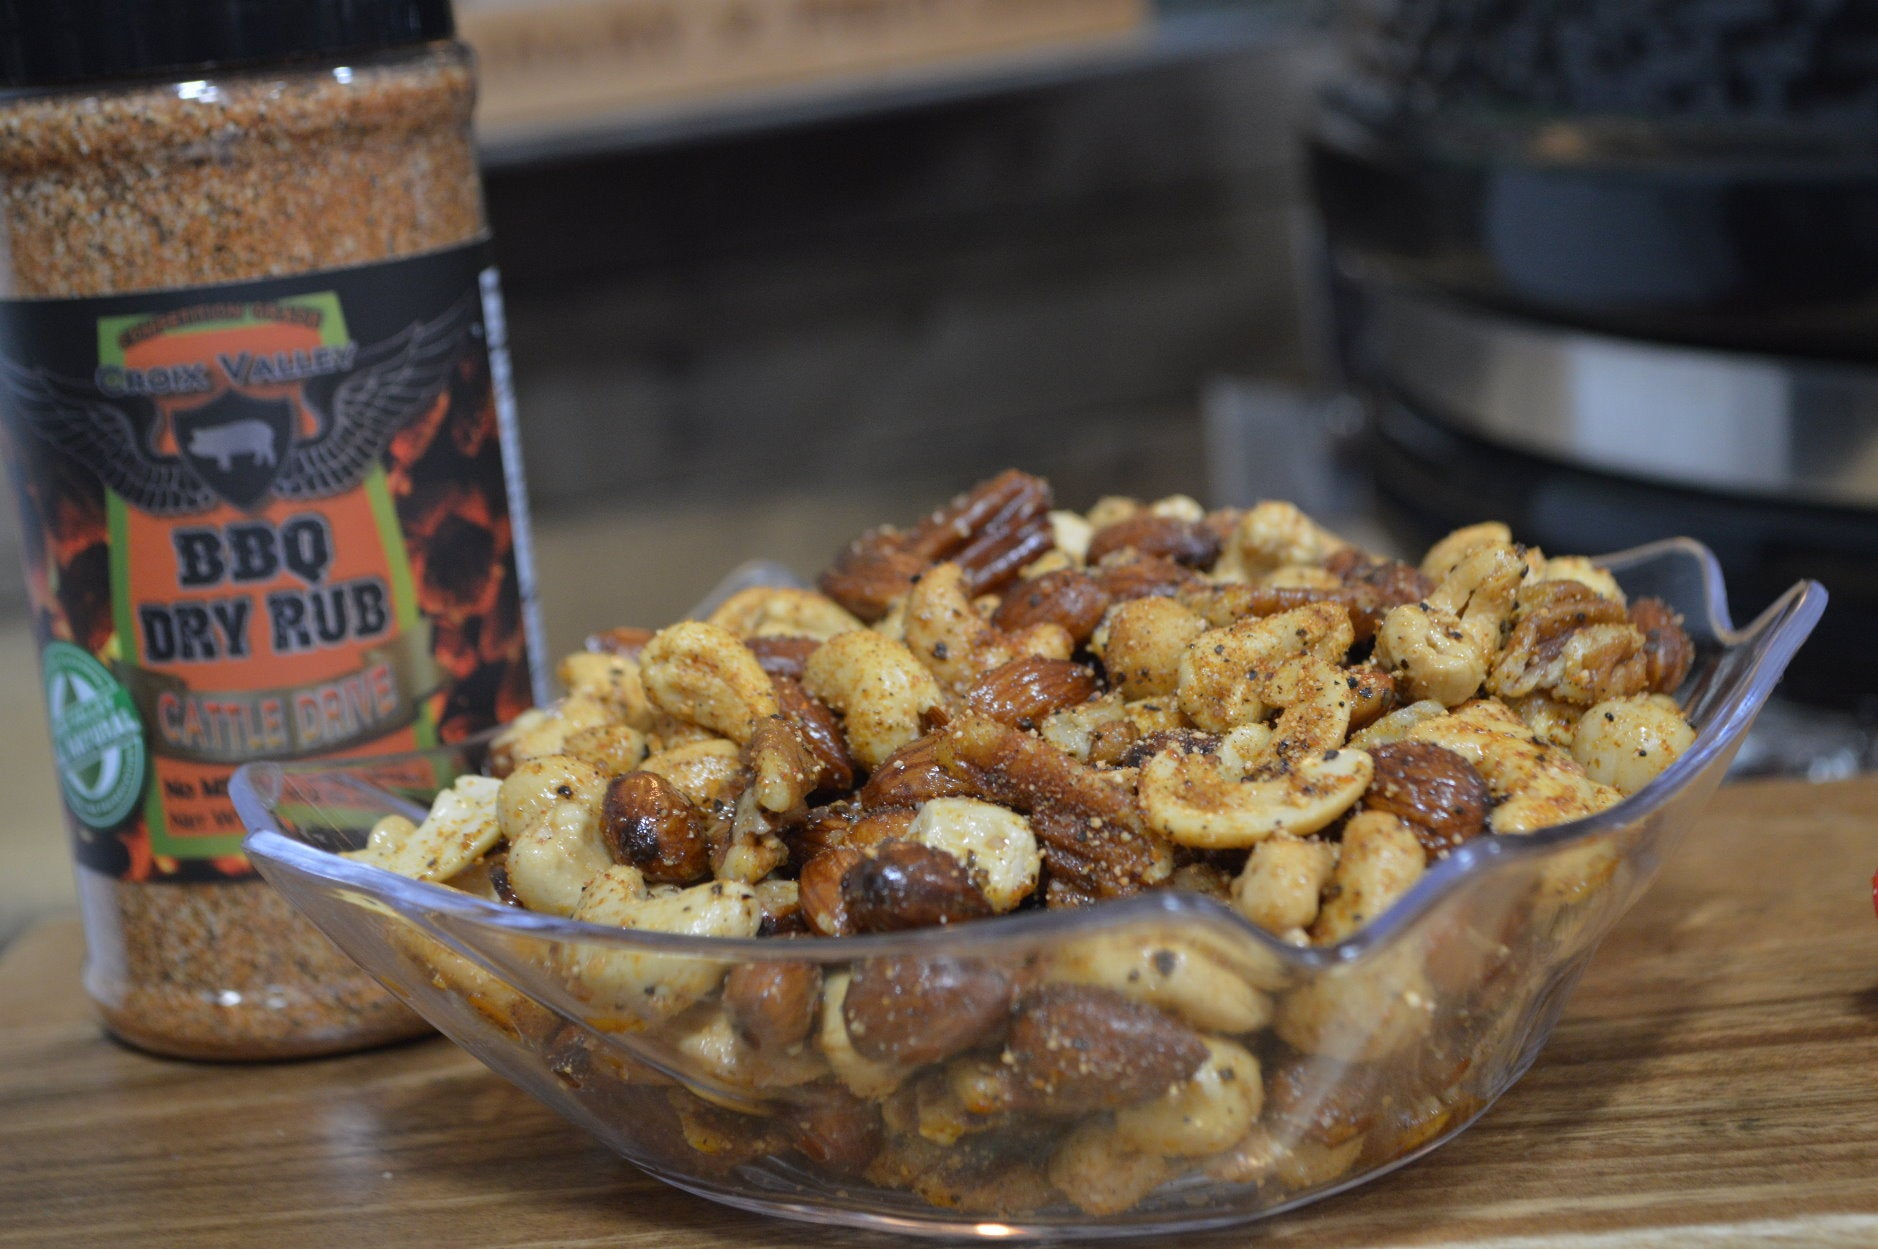 Smoked Mixed Nuts with Croix Valley Rubs